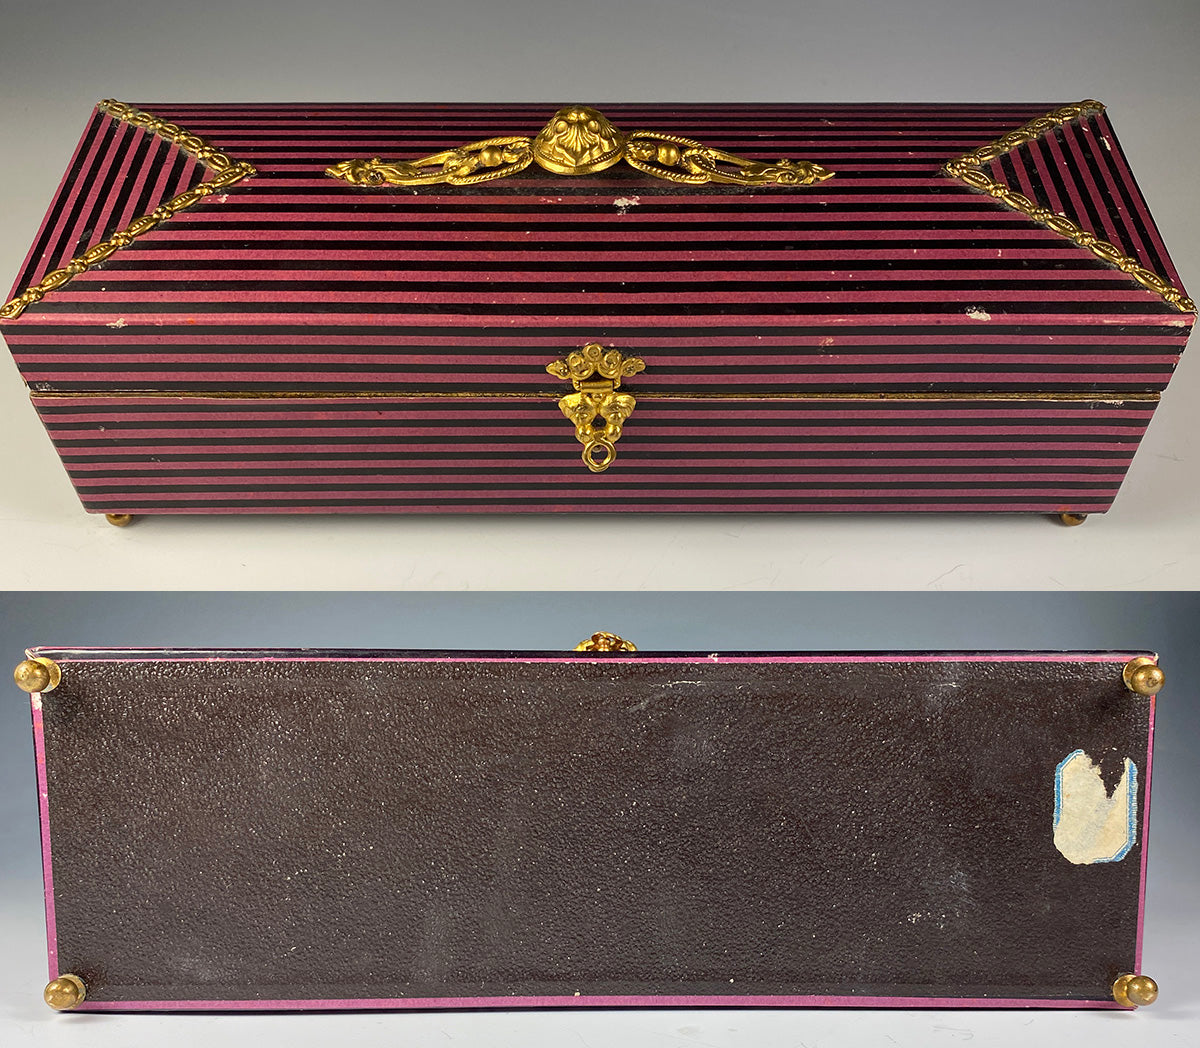 Antique French Chocolatier or Confectioner's Presentation Box, Ormolu and Paper, Card